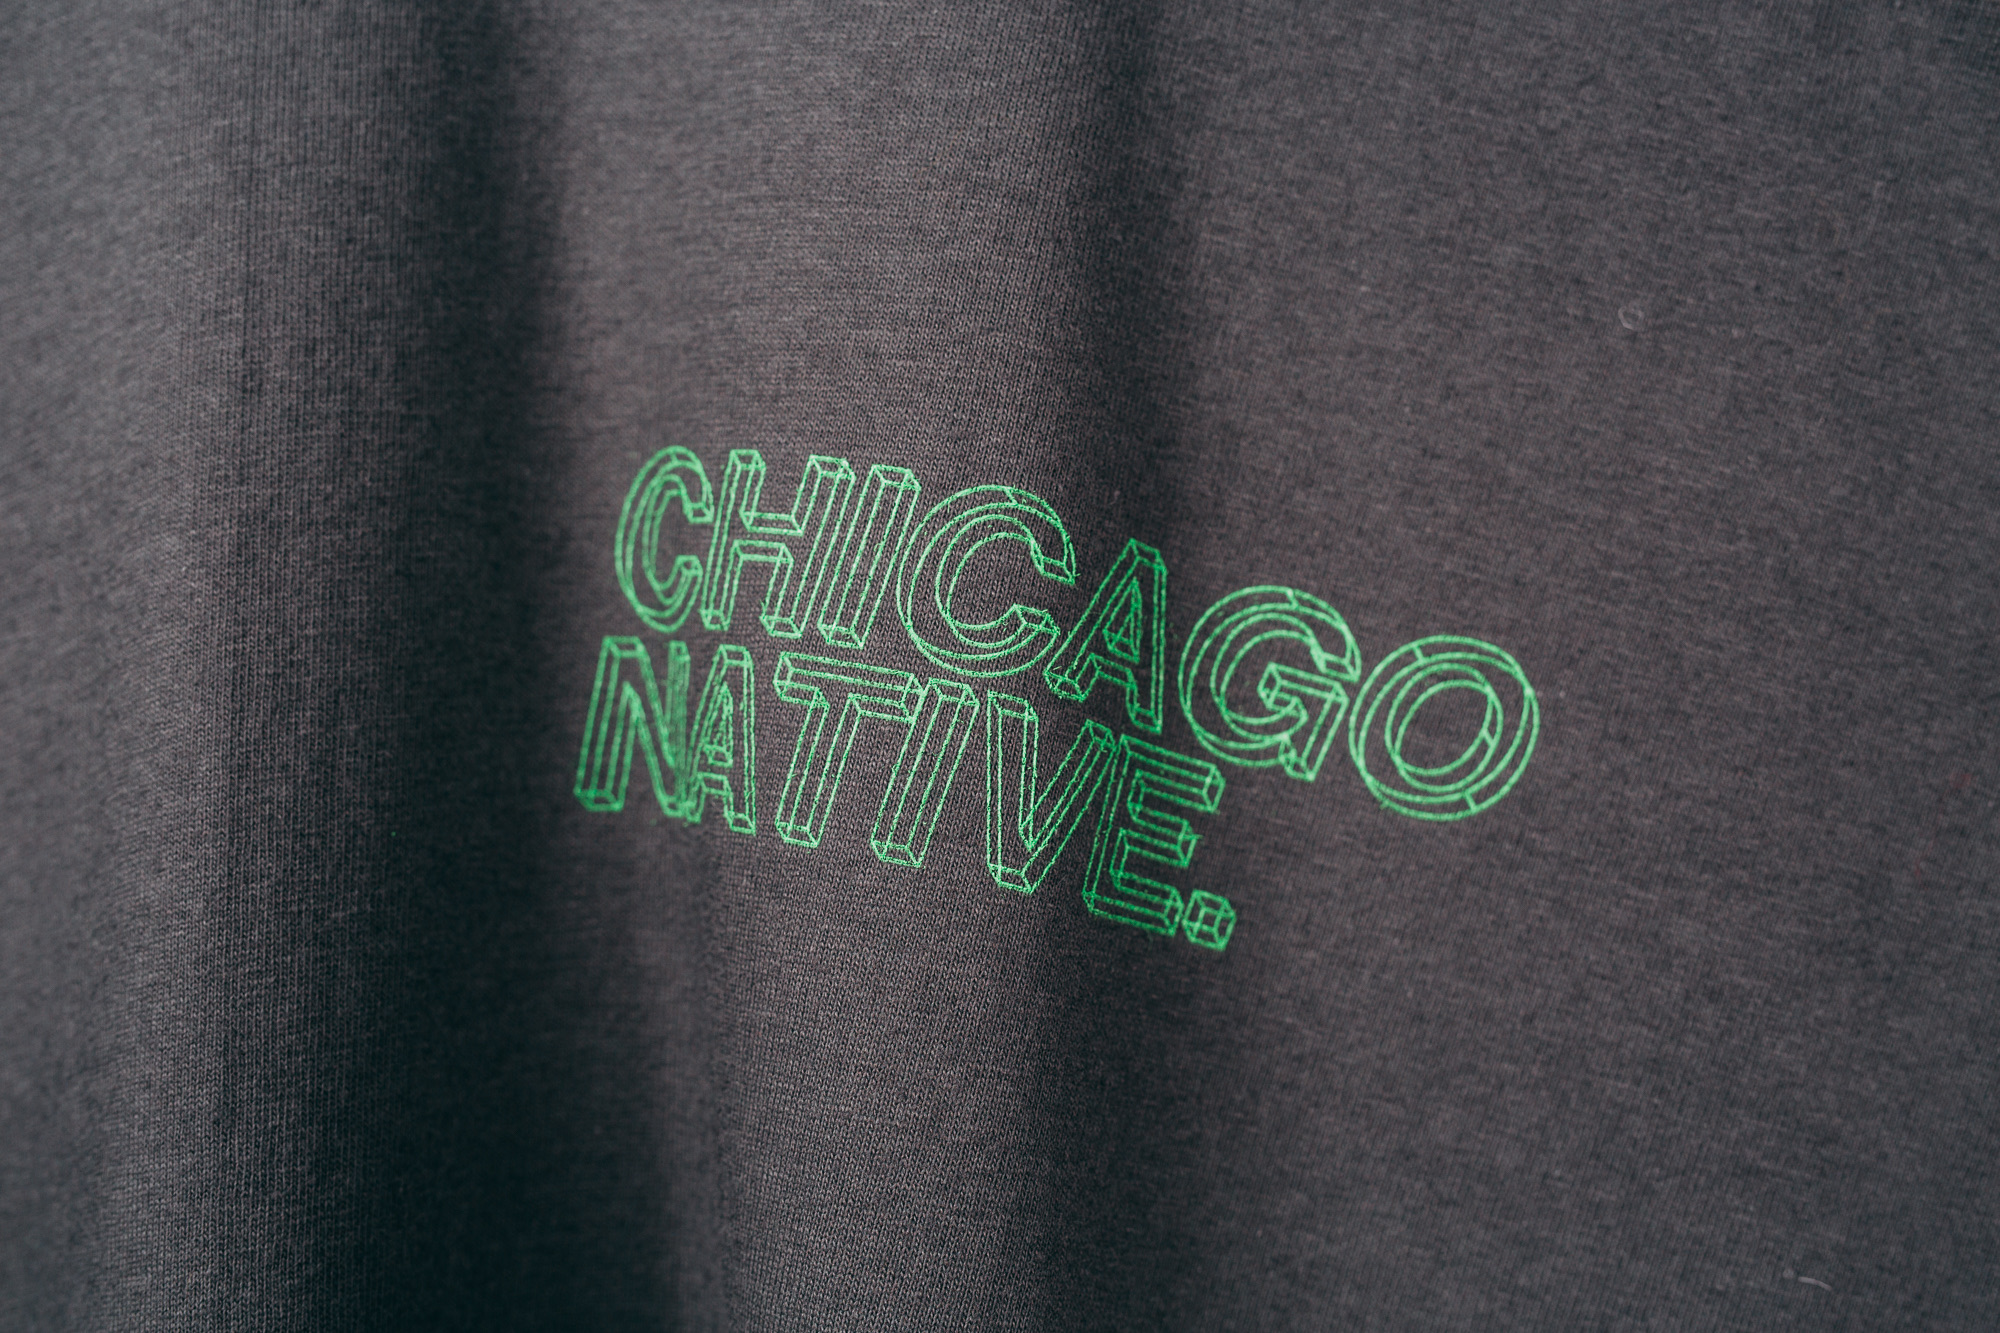 Chicago Native Her Story Limited Edition Collection - Native Society - Juan Riesco 4.JPG